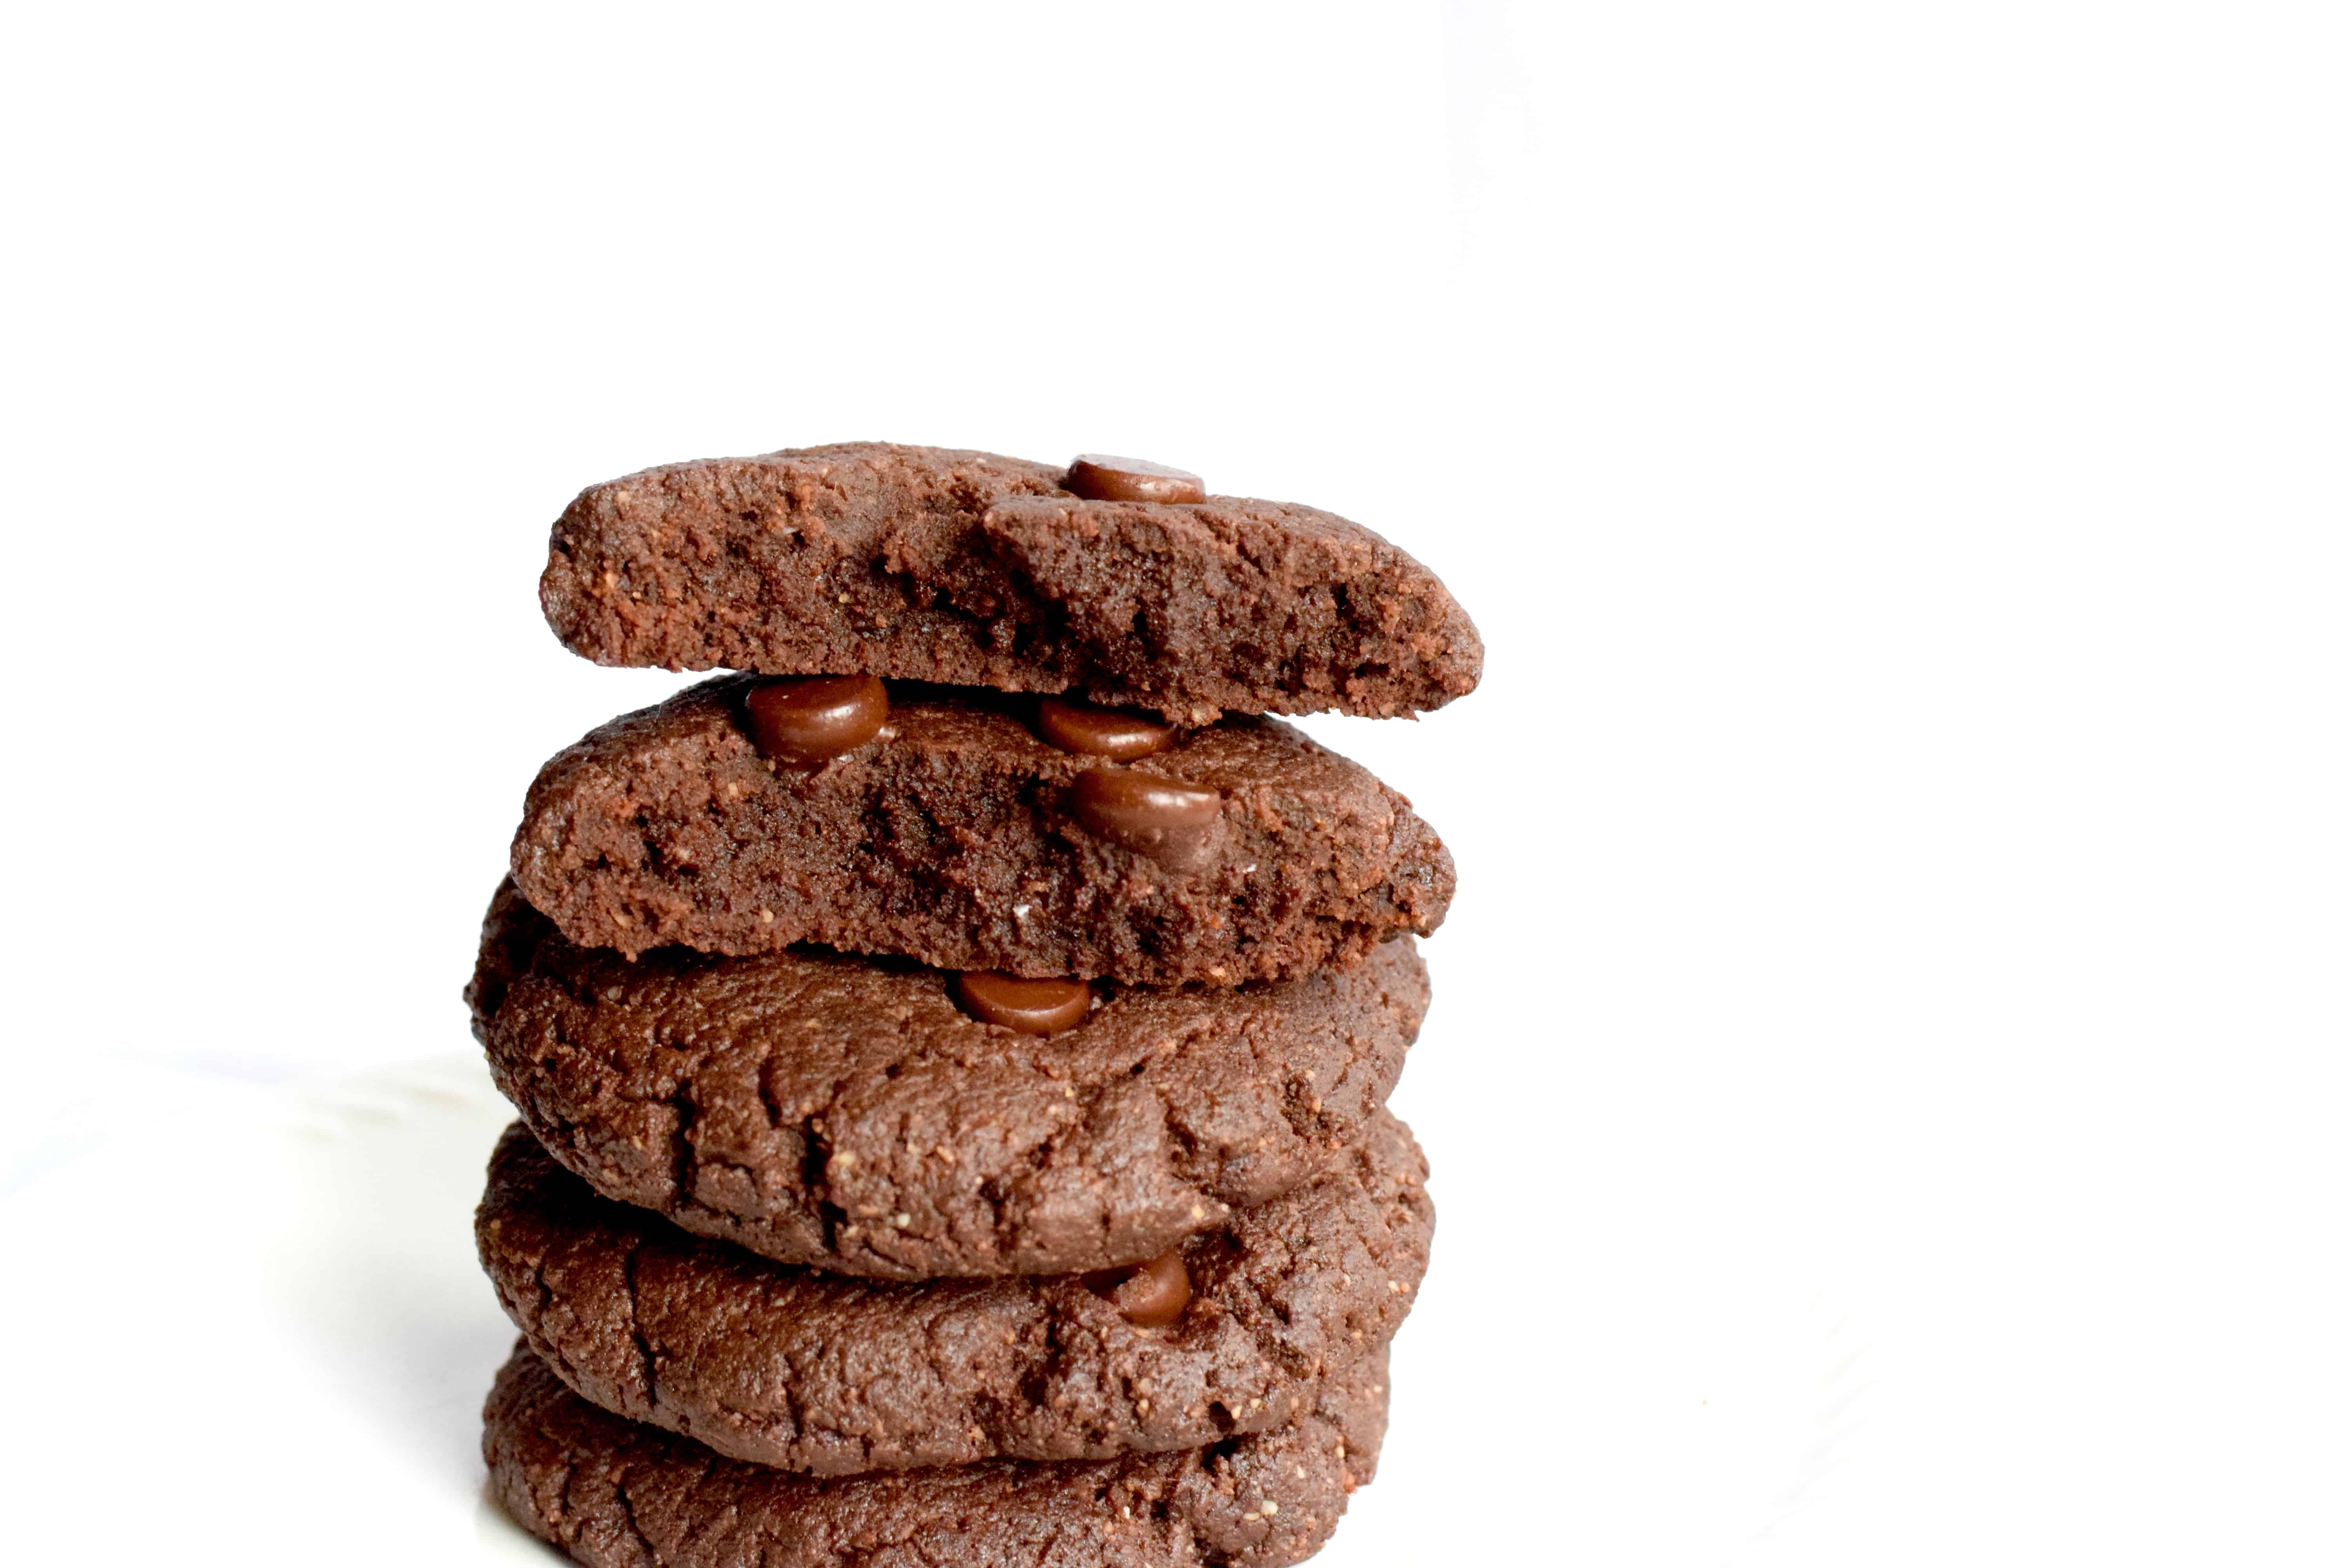 ketolow carb double chocolate chewy cookies